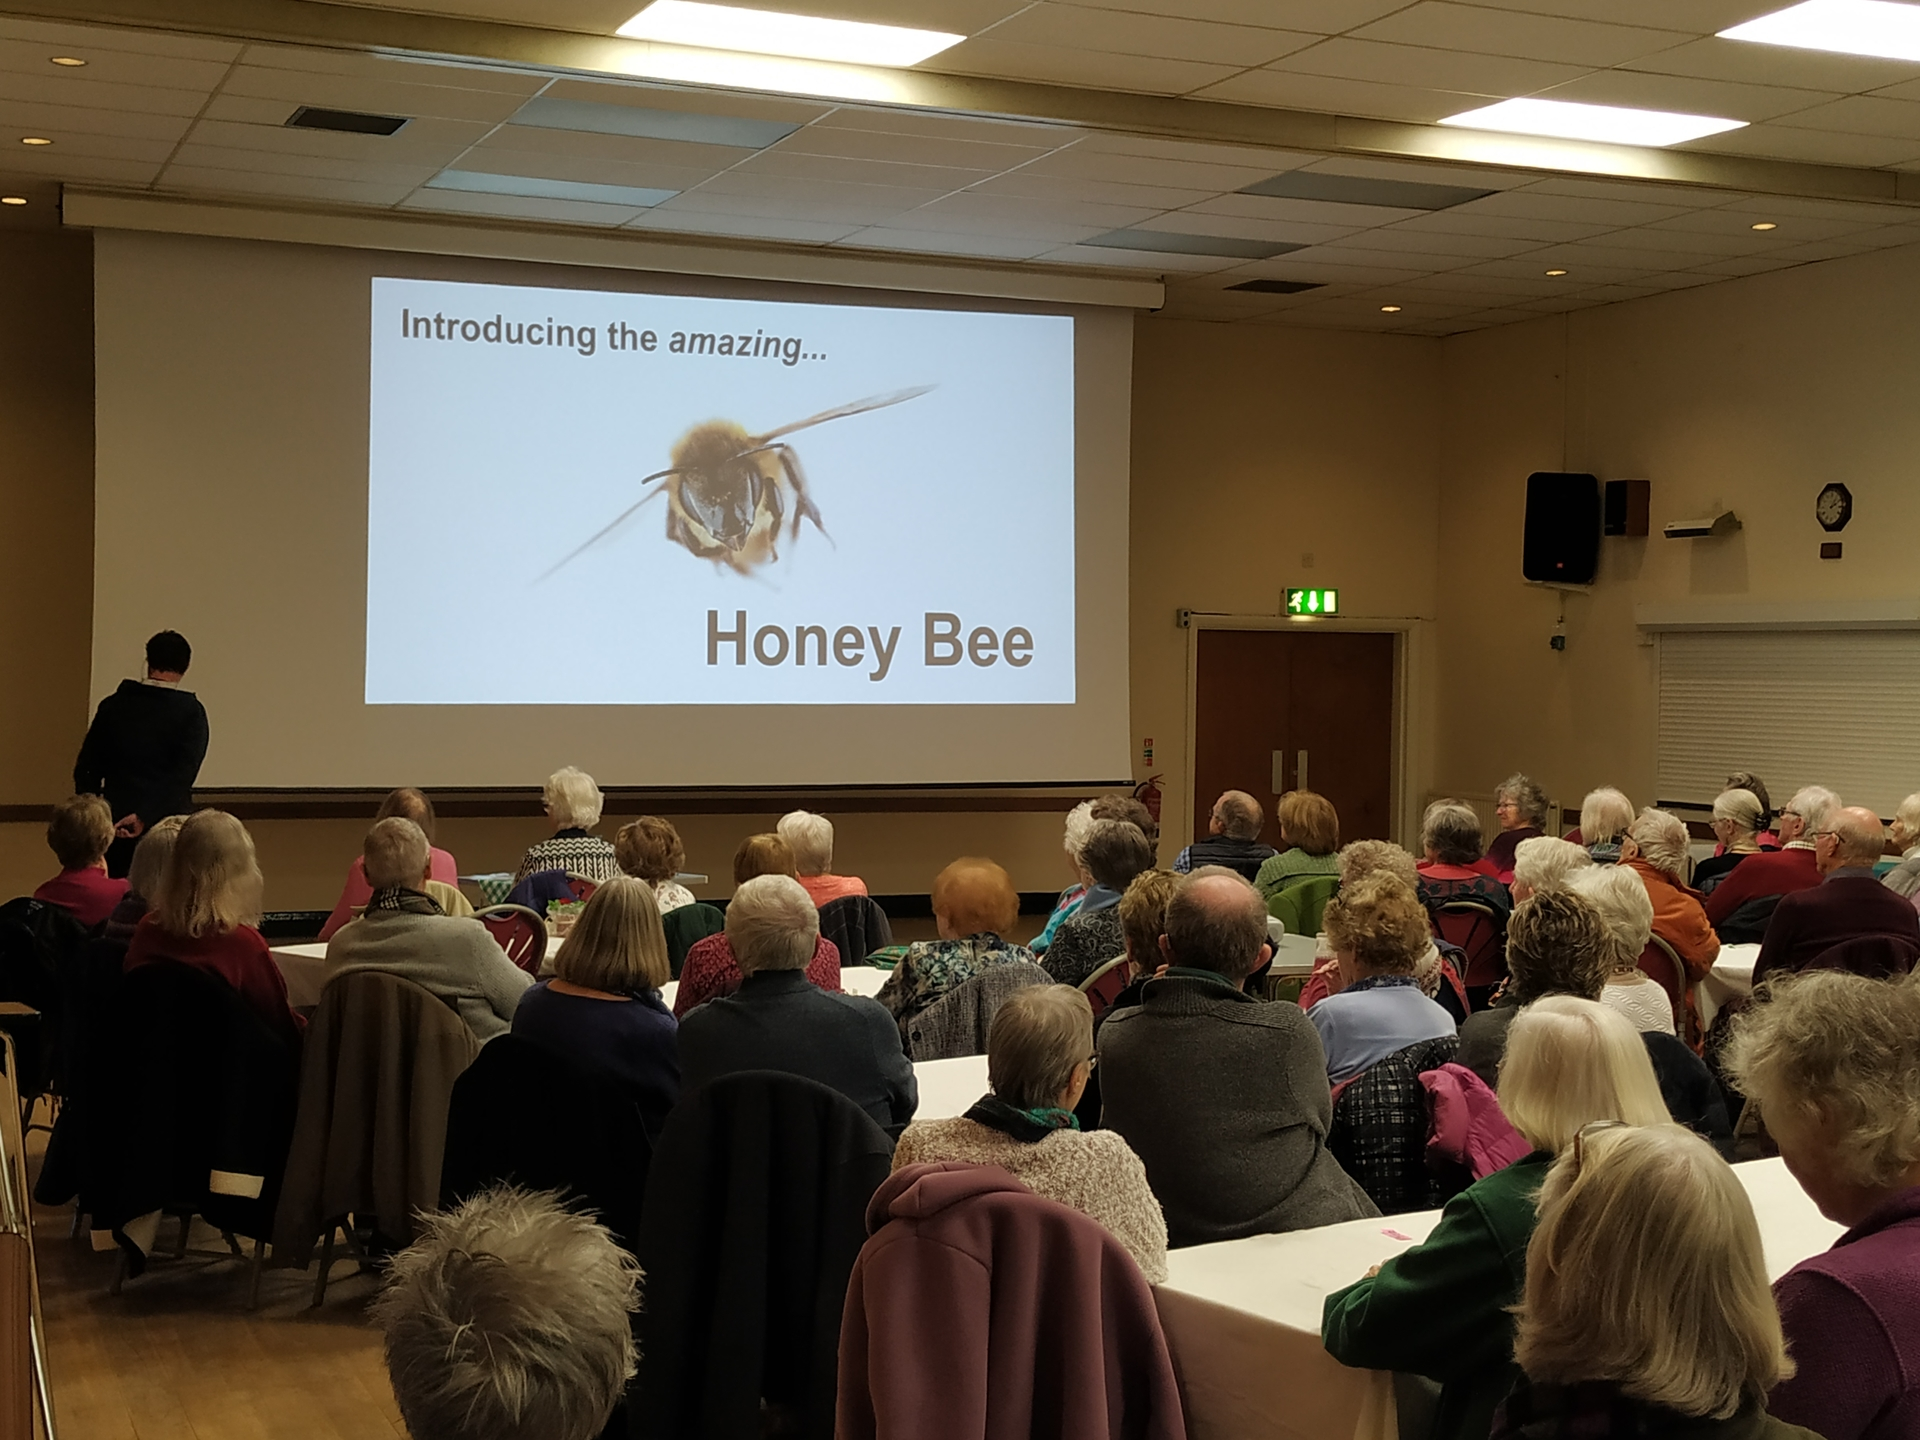 The Amazing Honey Bee - click for text